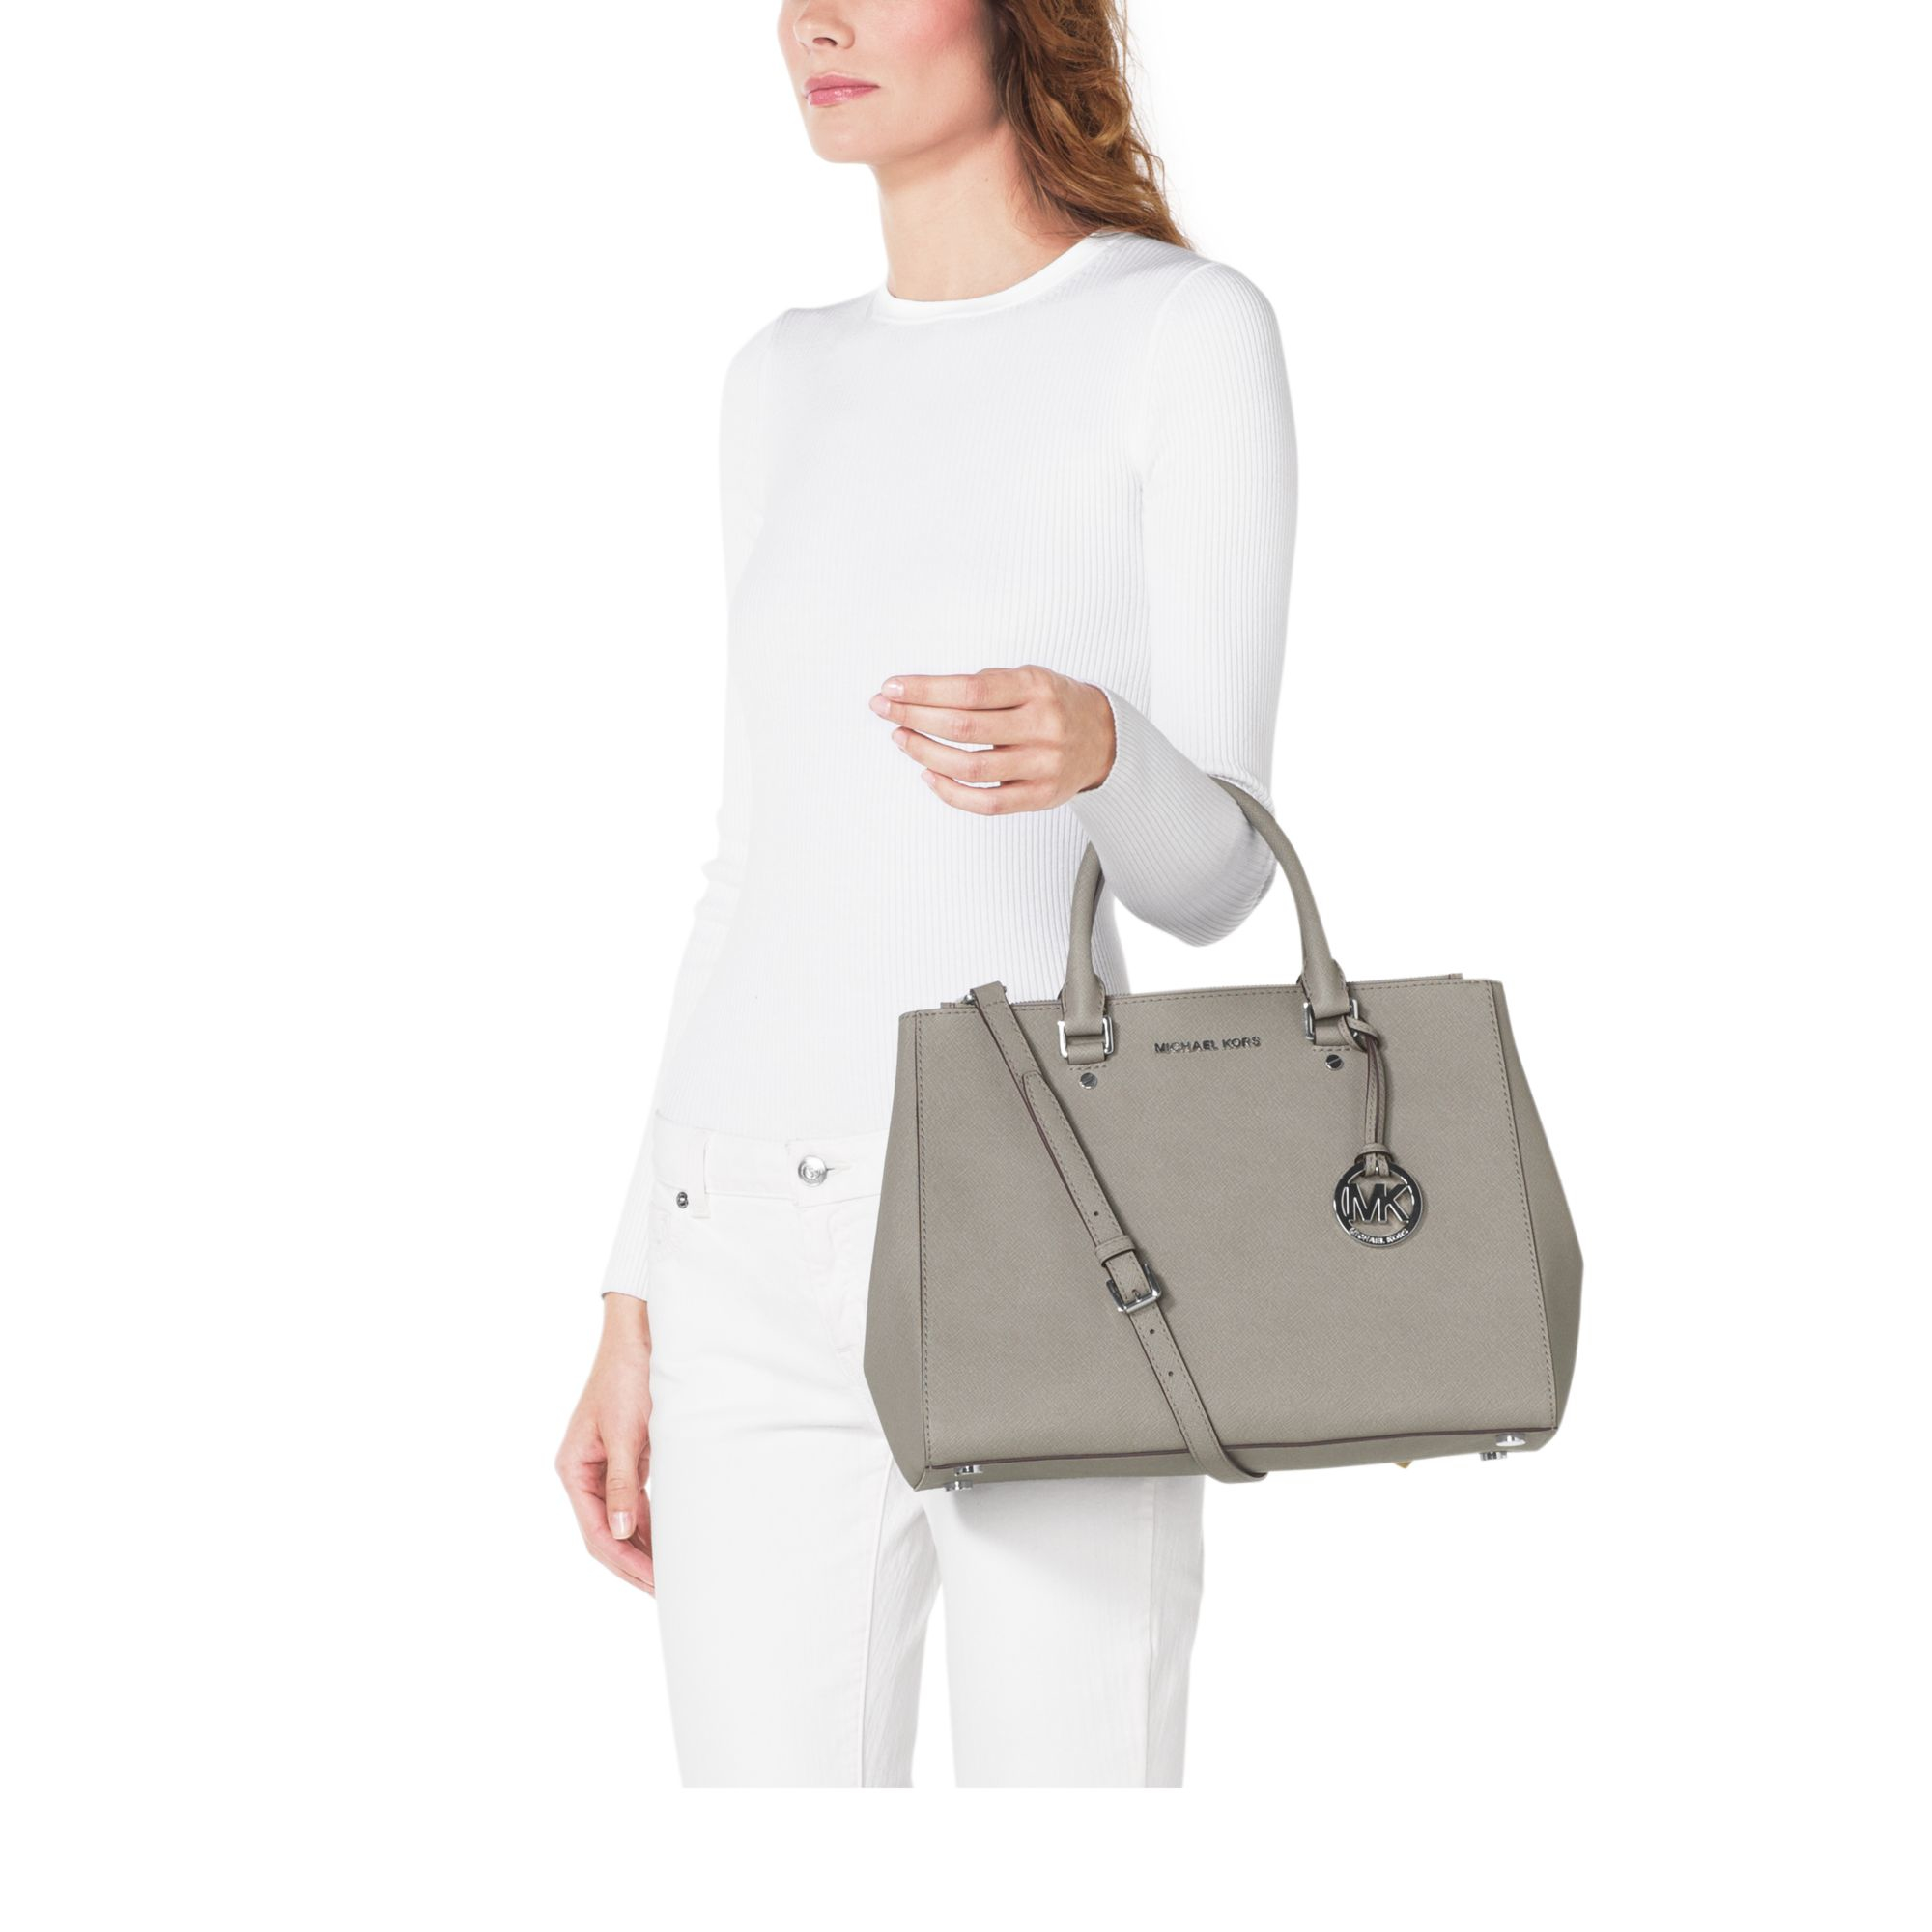 073566d53b24 wholesale michael kors sutton medium satchel pearl grey d7295 fe987  get  lyst michael kors sutton saffiano leather satchel in white 1df48 22a36